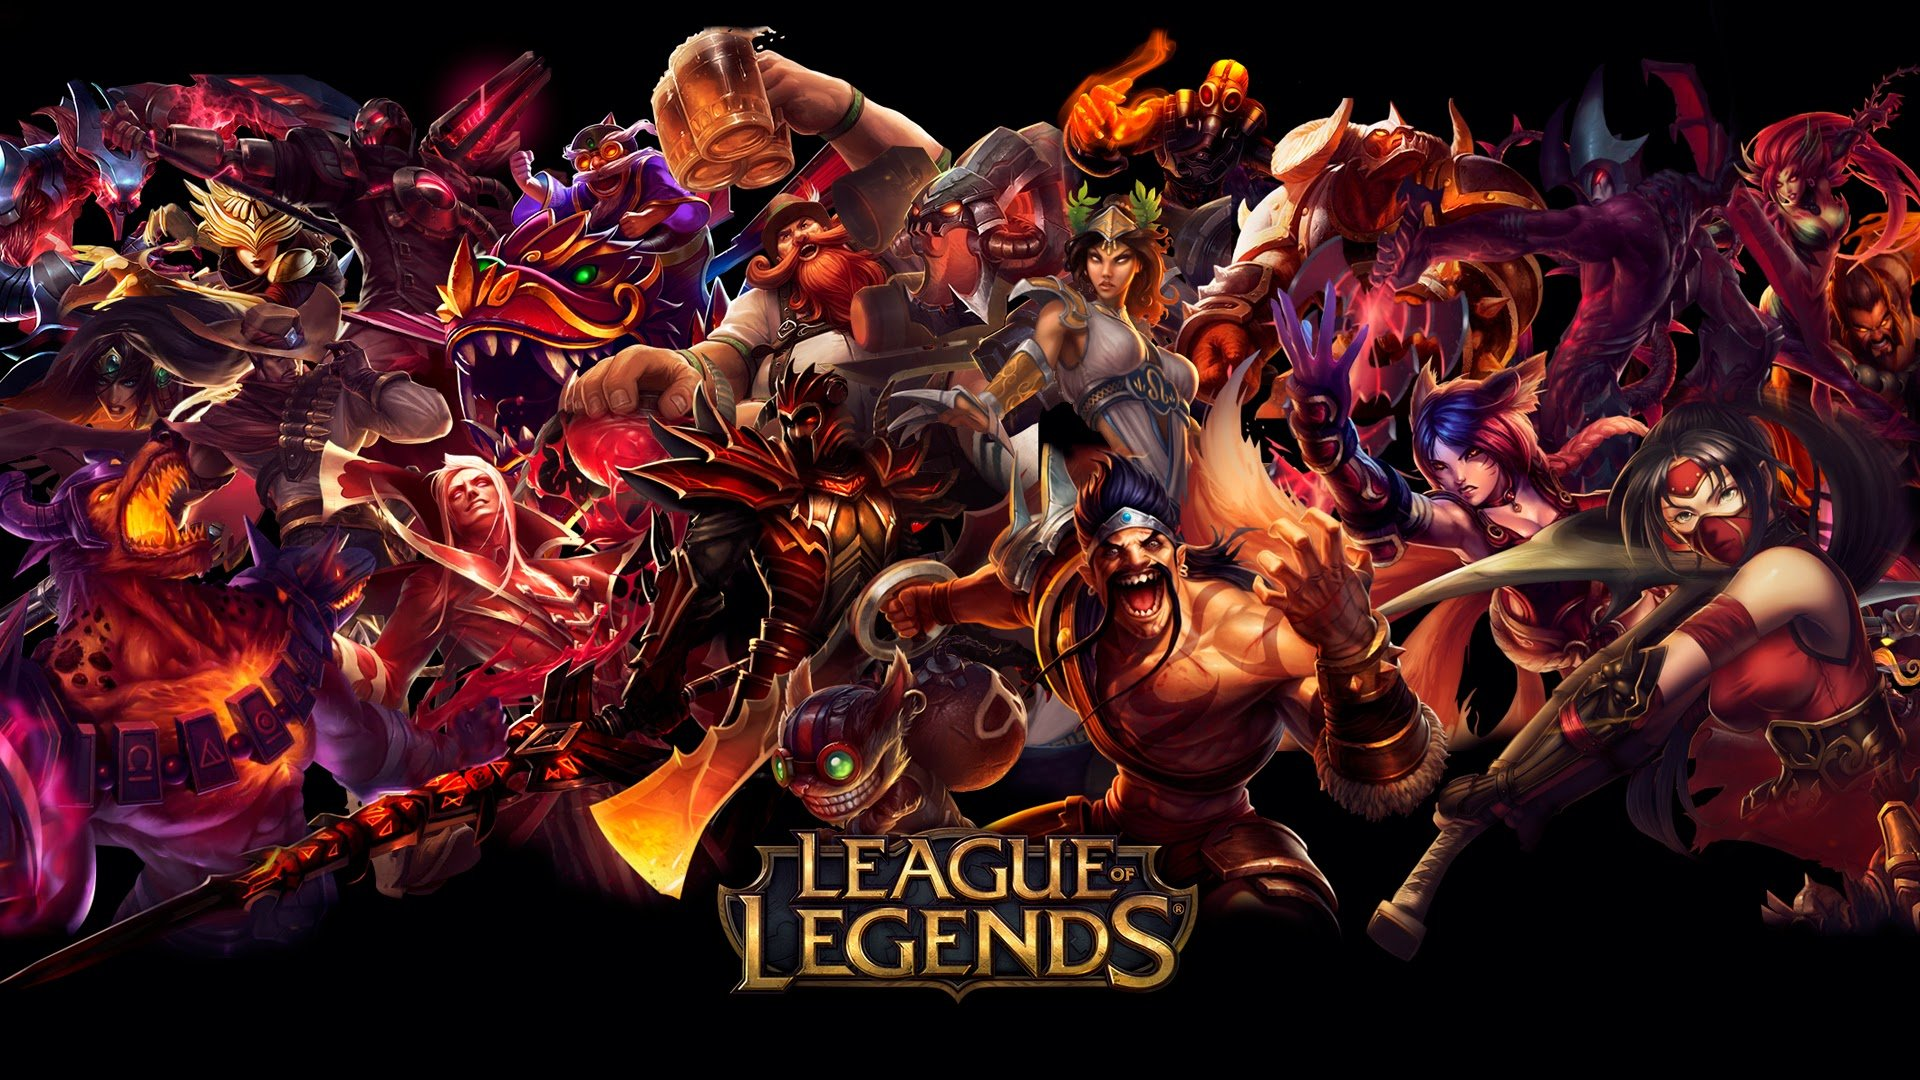 ... league of legends red hd wallpaper background lol champion 1920x1080